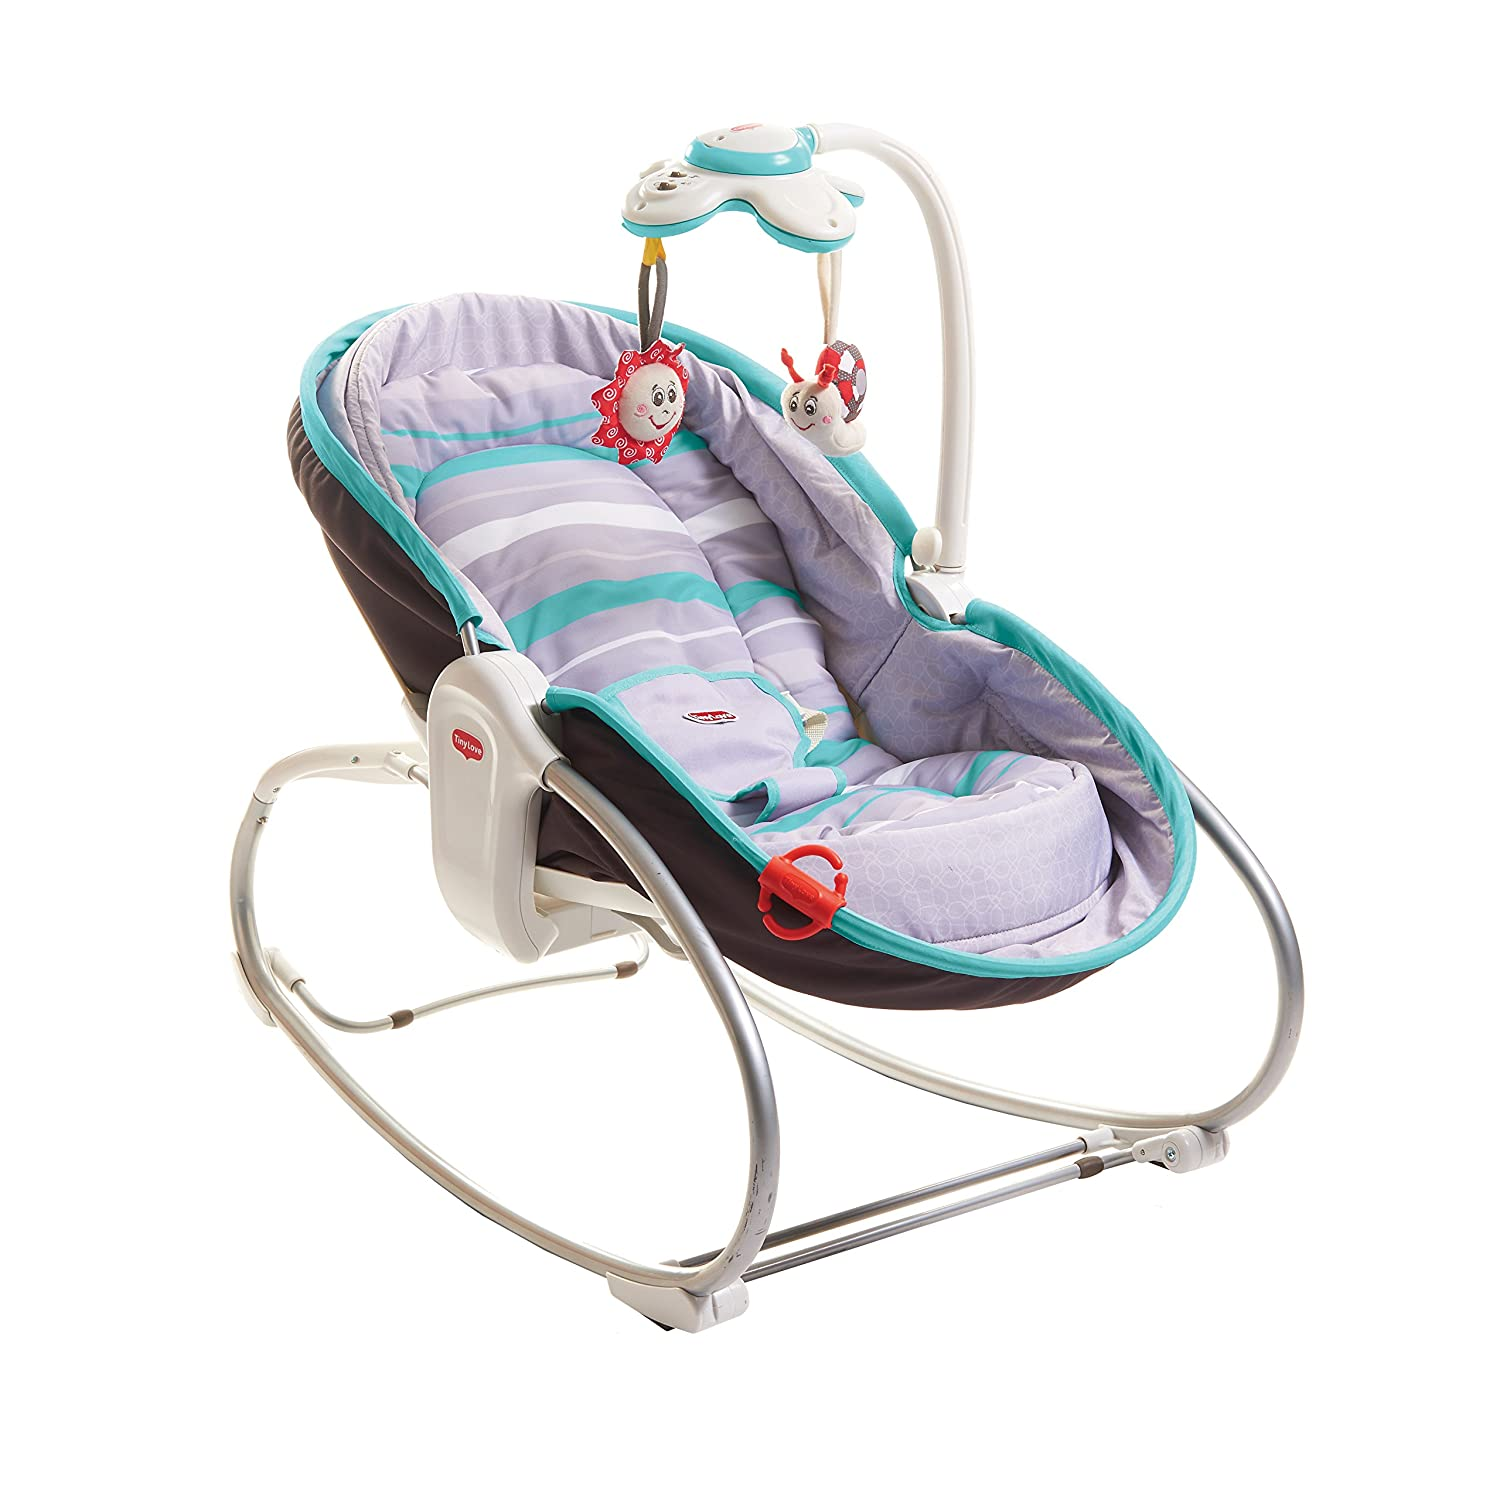 "נדנדה לתינוק Tiny Love 3-in-1 Rocker Napper (כ-376 ש""ח)"